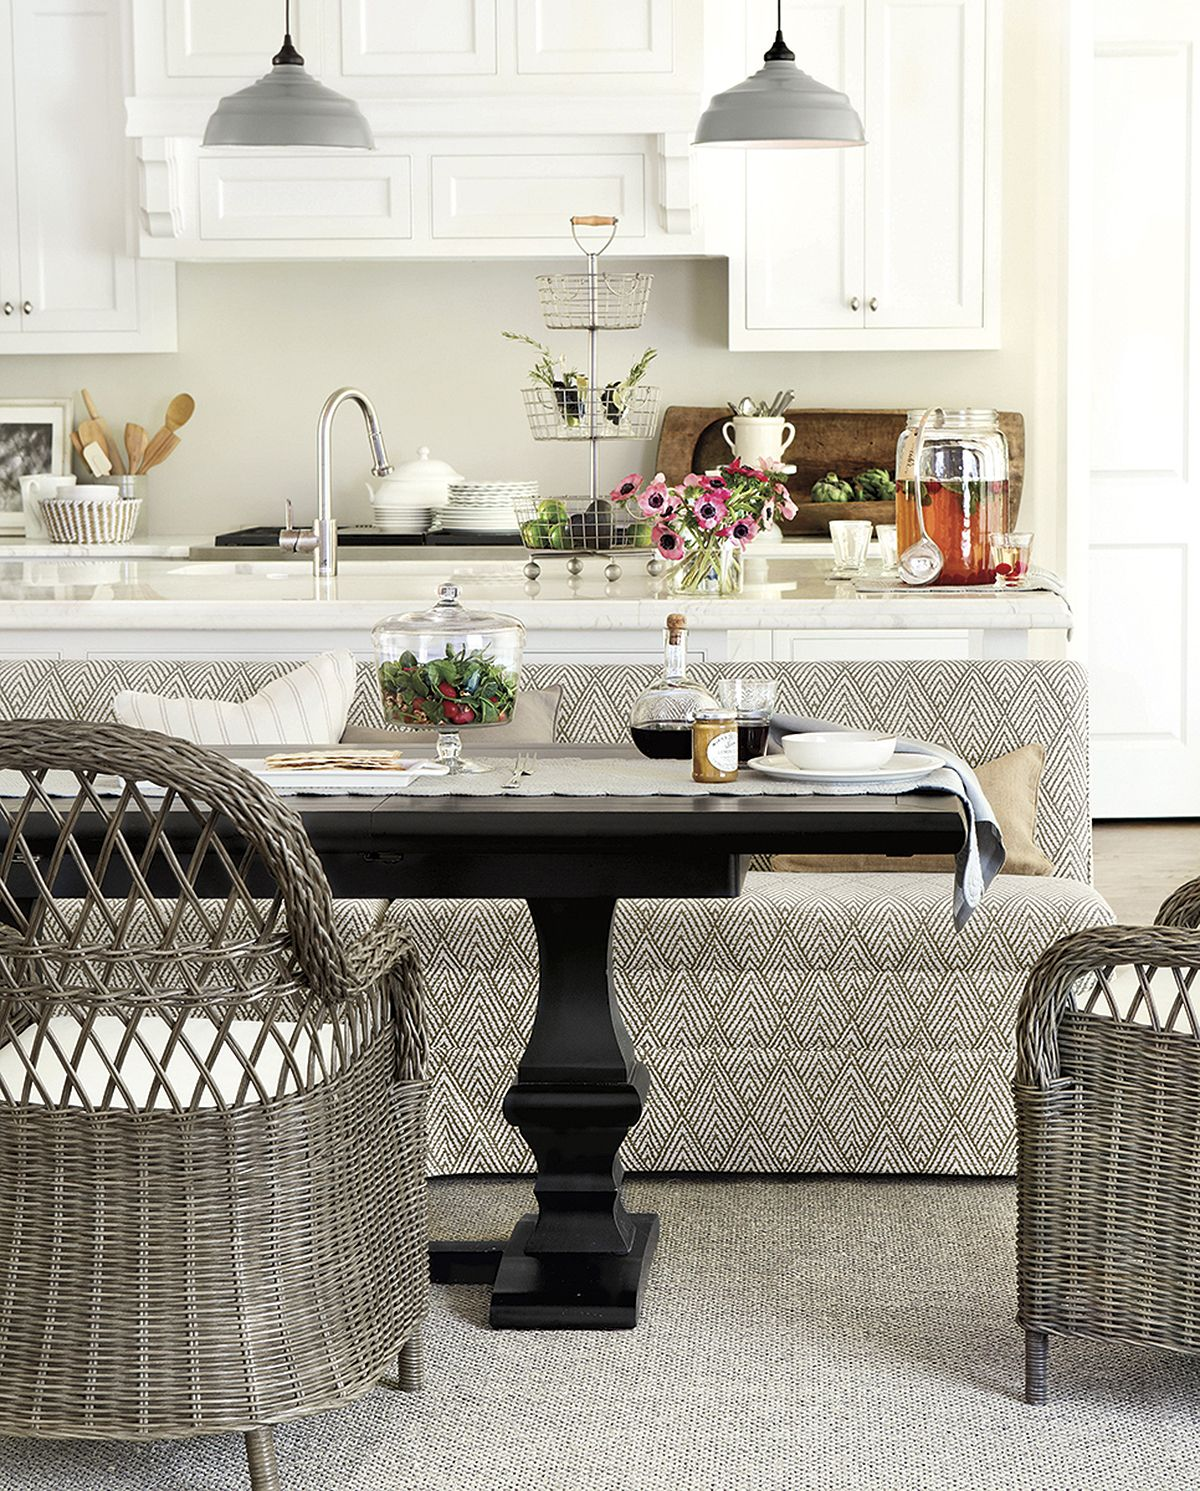 Delicieux Breakfast Banquette From Ballard Designs. Kitchen BenchesKitchen Island ...